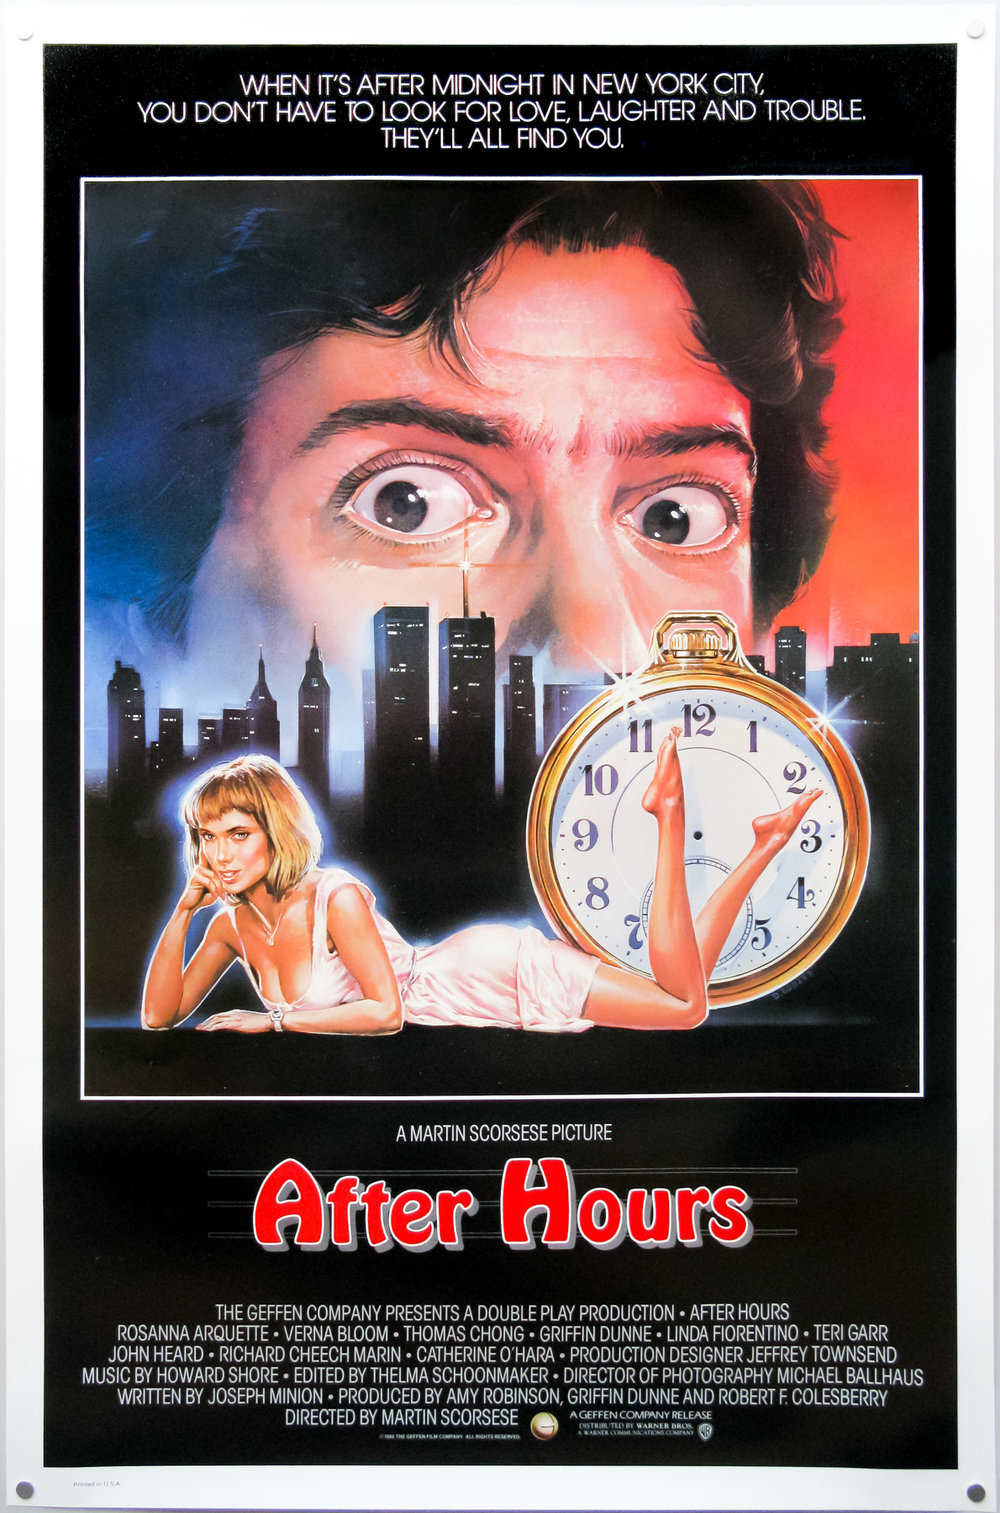 After Hours (1985) - Directed by: Martin ScorseseStarring: Griffin Duune, Rosanna Arquette, Verna BloomRated: RRunning Time: 1 h 37 mTMM Score: 4.5 stars out of 5STRENGTHS: Writing, Directing, Acting, PacingWEAKNESSES: -